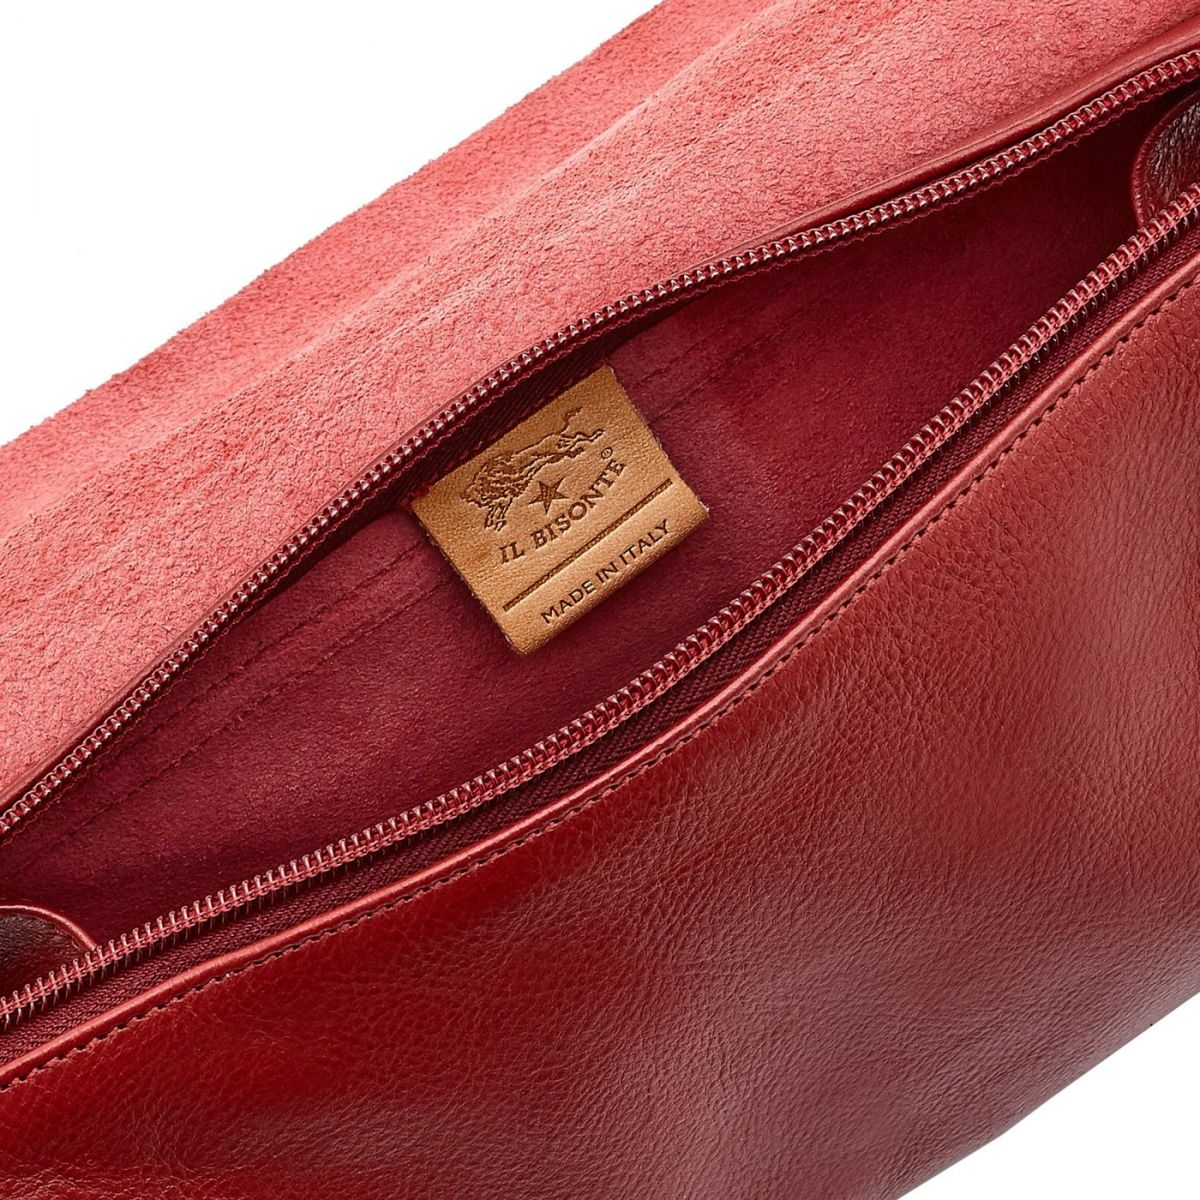 Women's Crossbody Bag in Cowhide Double Leather BCR015 color Red | Details